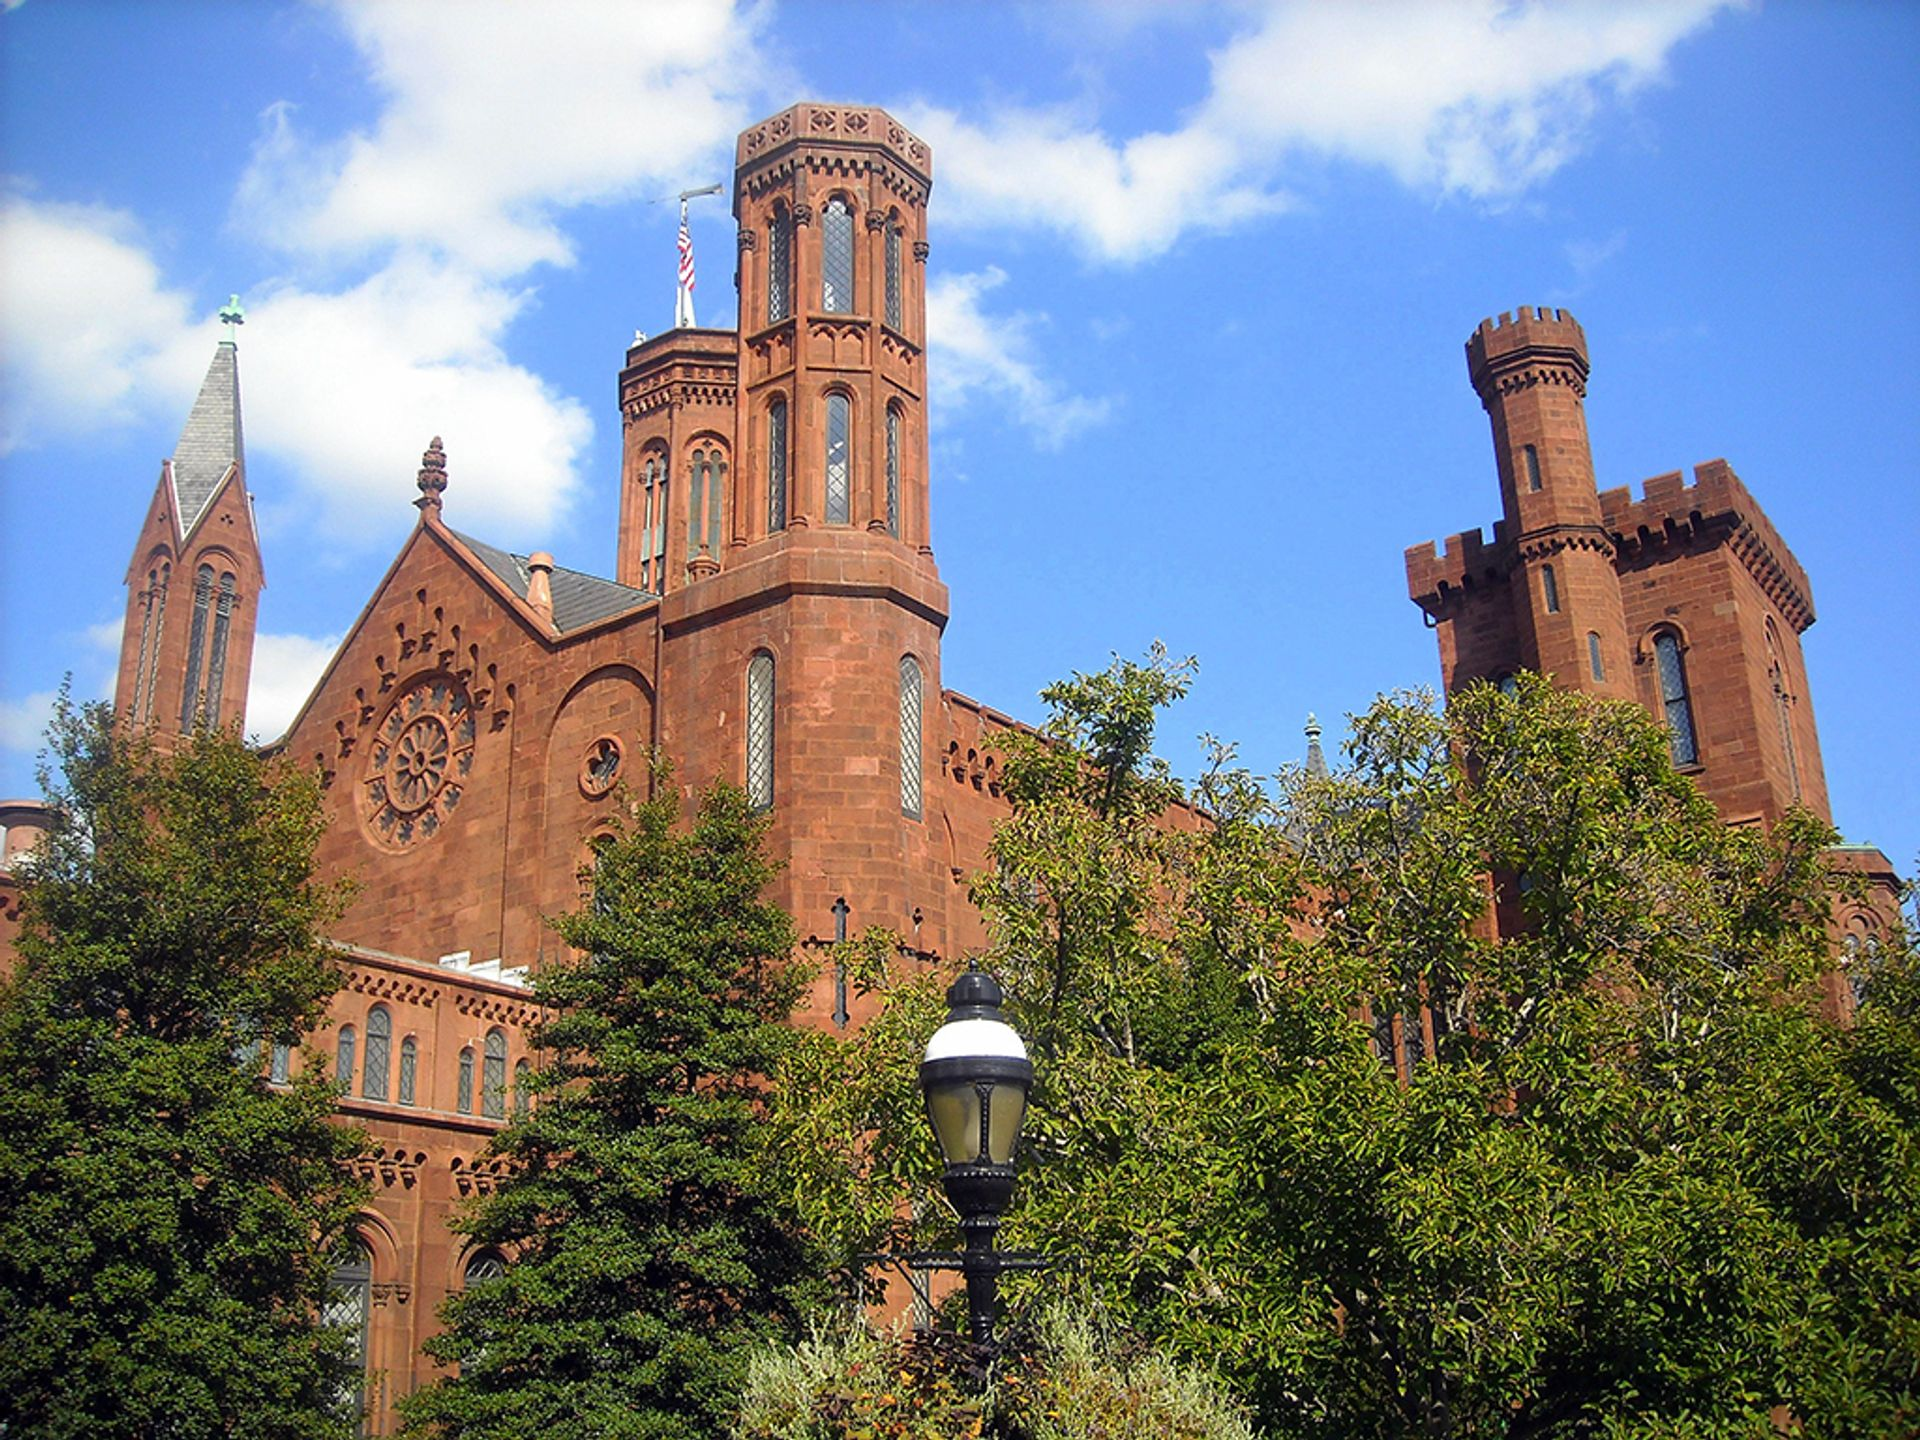 The Smithsonian Institution's Castle on the National Mall in Washington, DC